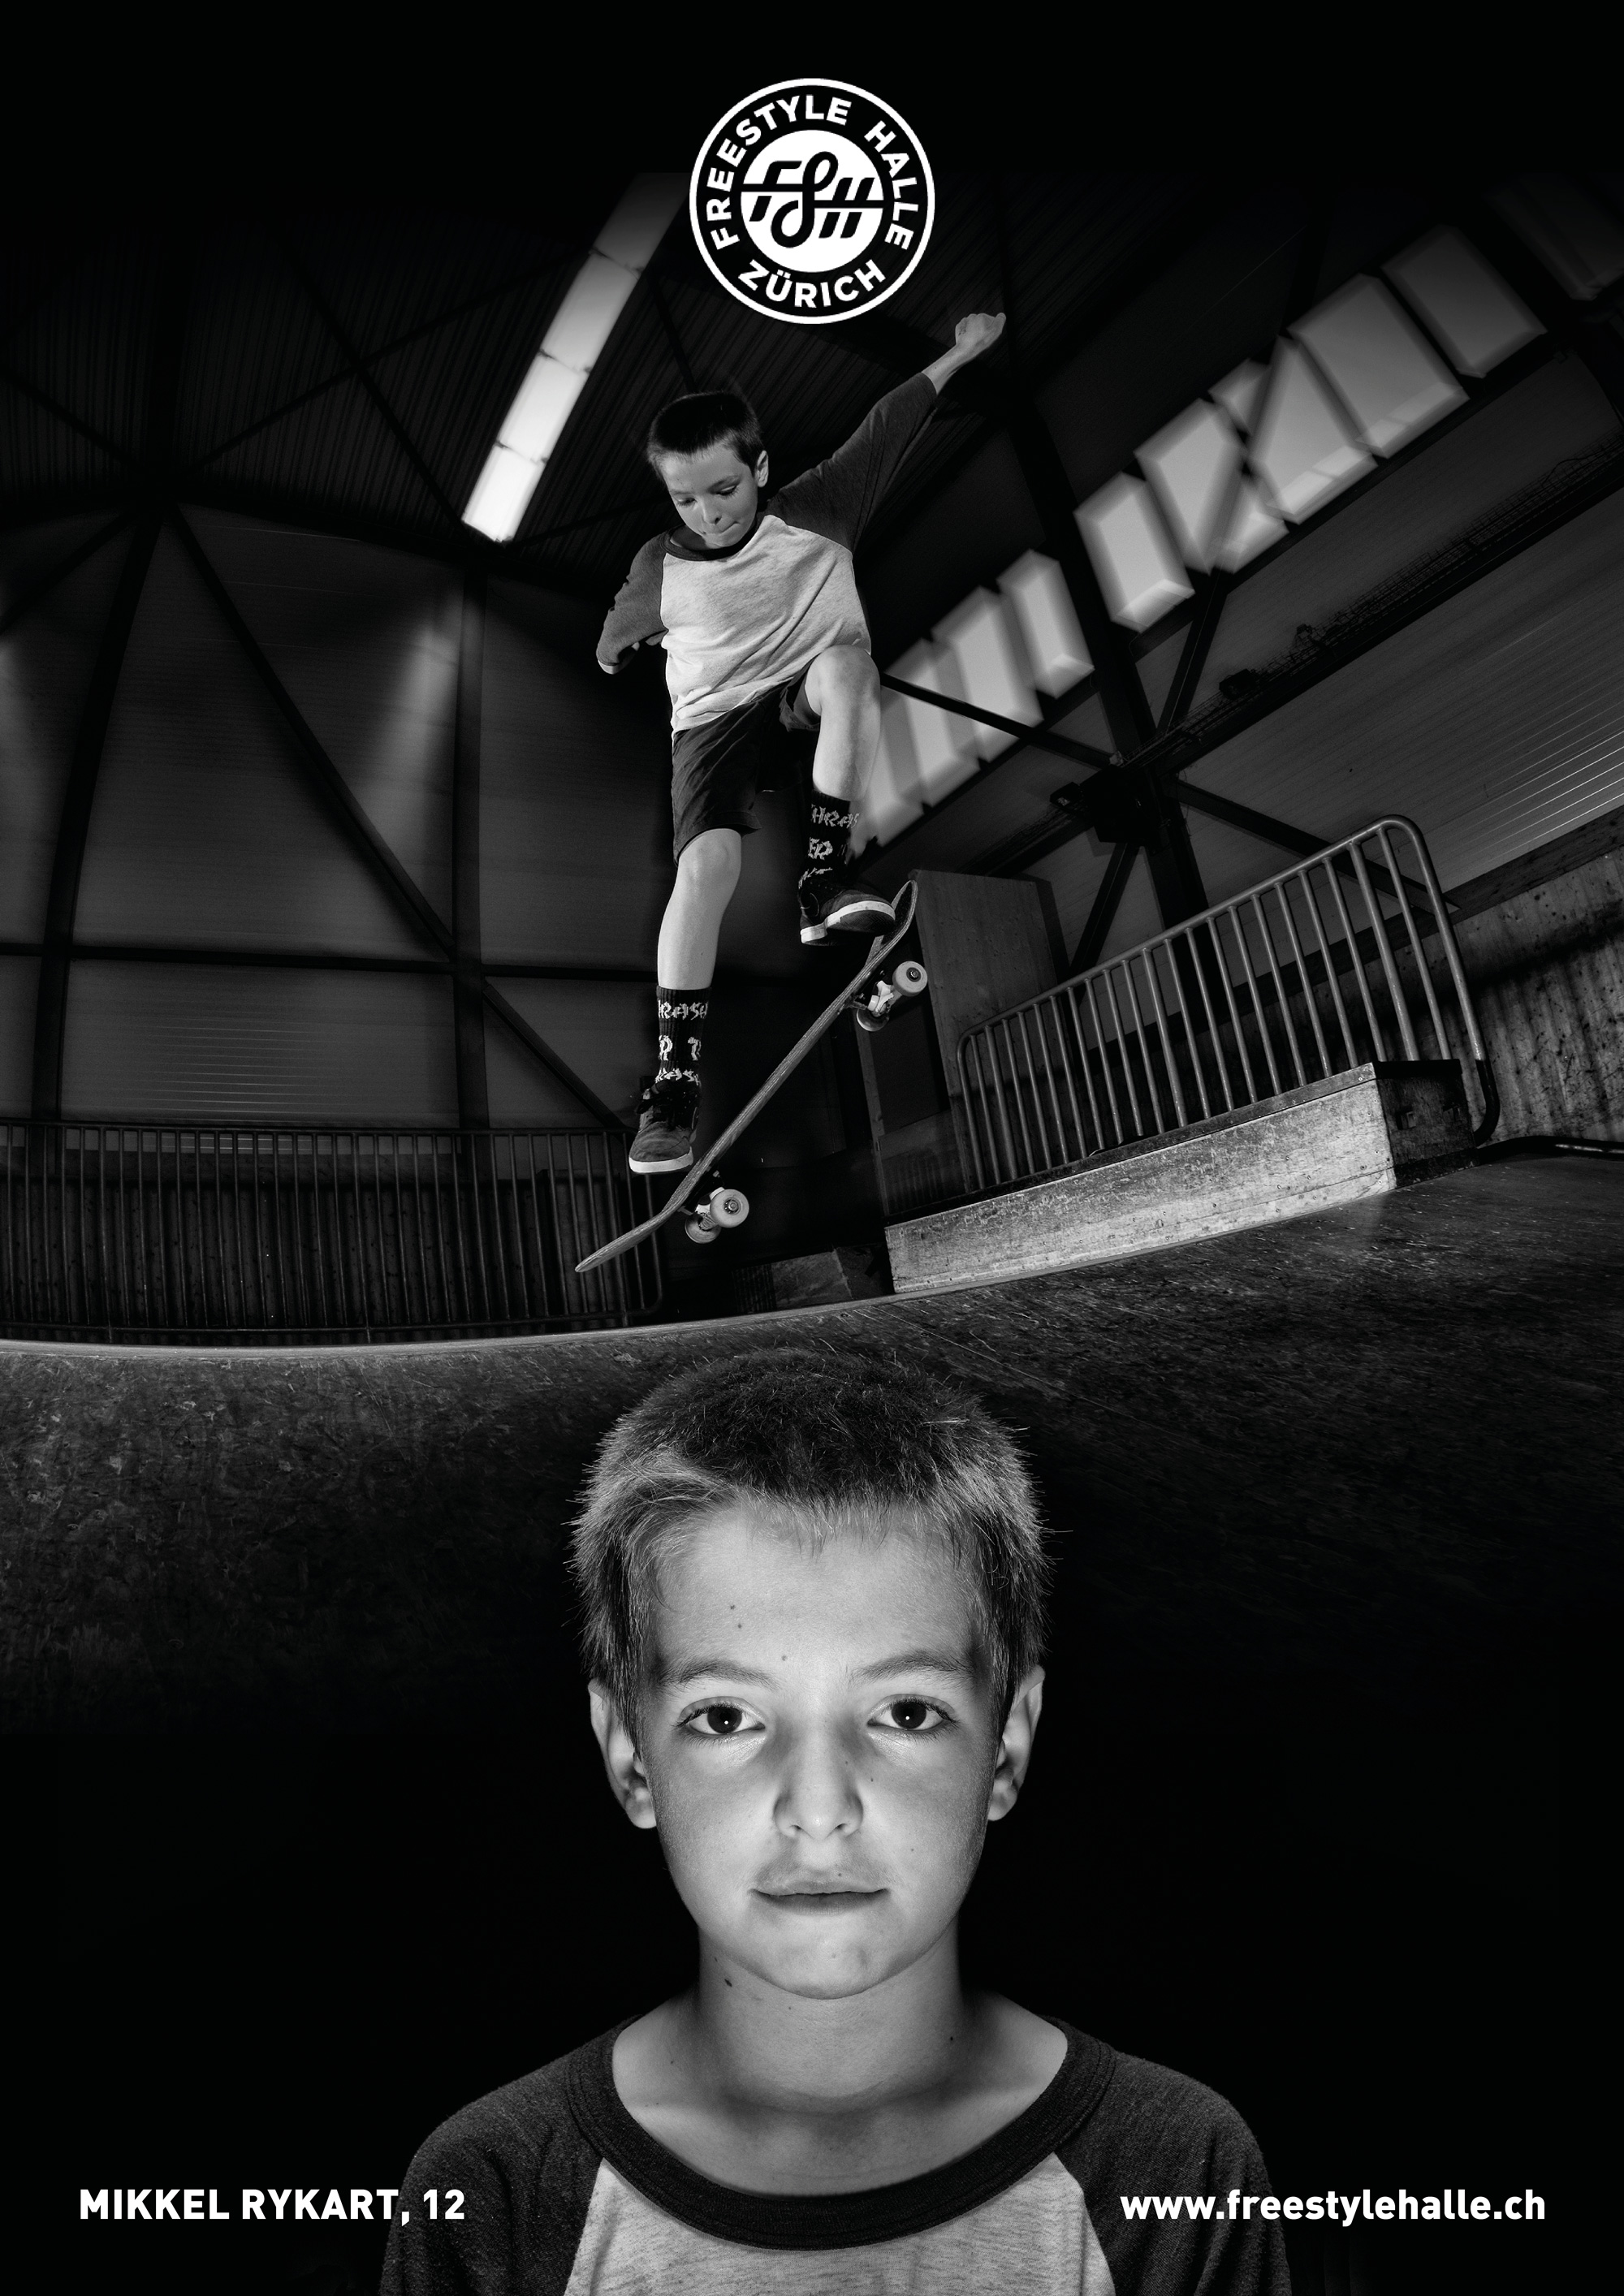 """""""LOCAL""""  fotoseries by 📸@peterrauch  featuring the creatures of the freestylehalle biotope- today:  name  mikkel rykart  how old are you? wie alt bist du?  12  at what age did you start skating? in welchem alter bist du das erste mal geskatet?  9  where are you from? woher kommst du?  swiss, denmark  what do you get out of skating? was gibt dir skaten?  lots of nice people and new friends  vil netti lüt und neui kollege  are you member of a skate crew? bist du in einer crew?  jes, shredders!  favorit trick? lieblings trick?  shove it and fakie bigspins    #freestylehalle #fshzh #local #zurich #skateboarding #biodiverisityofskateboarding"""